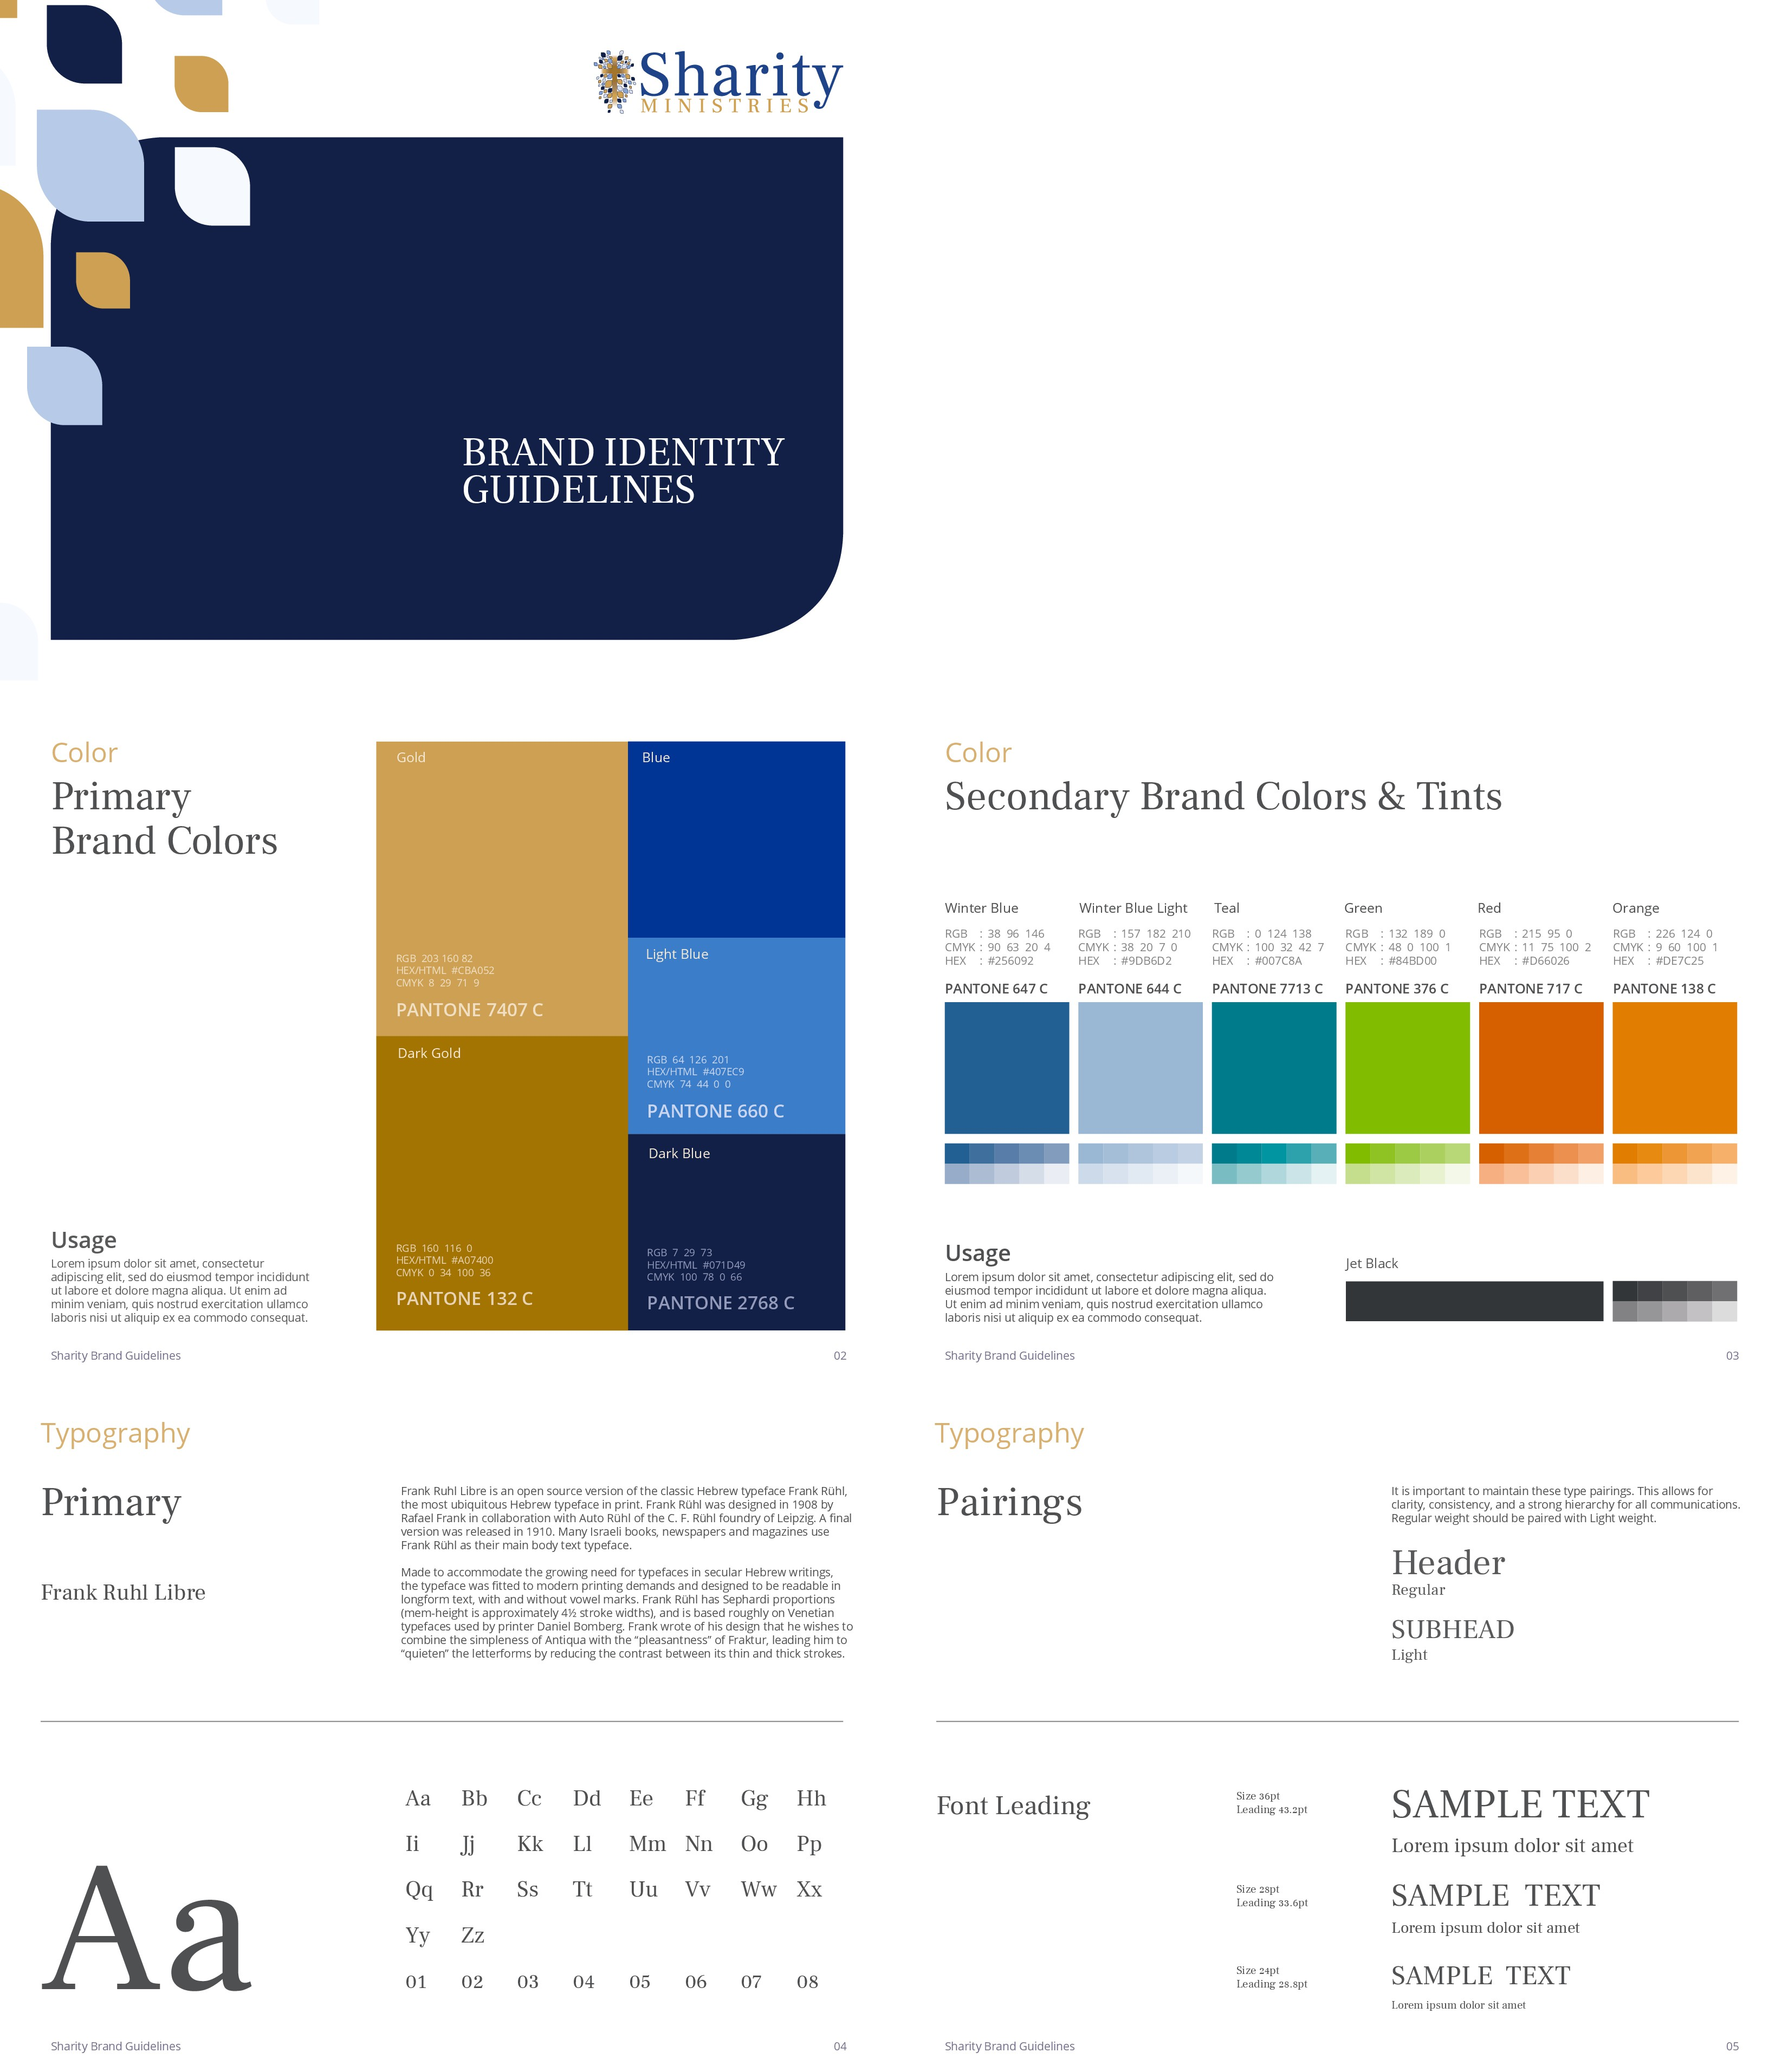 MOCKUP: Sharity Ministries Brand Guidelines